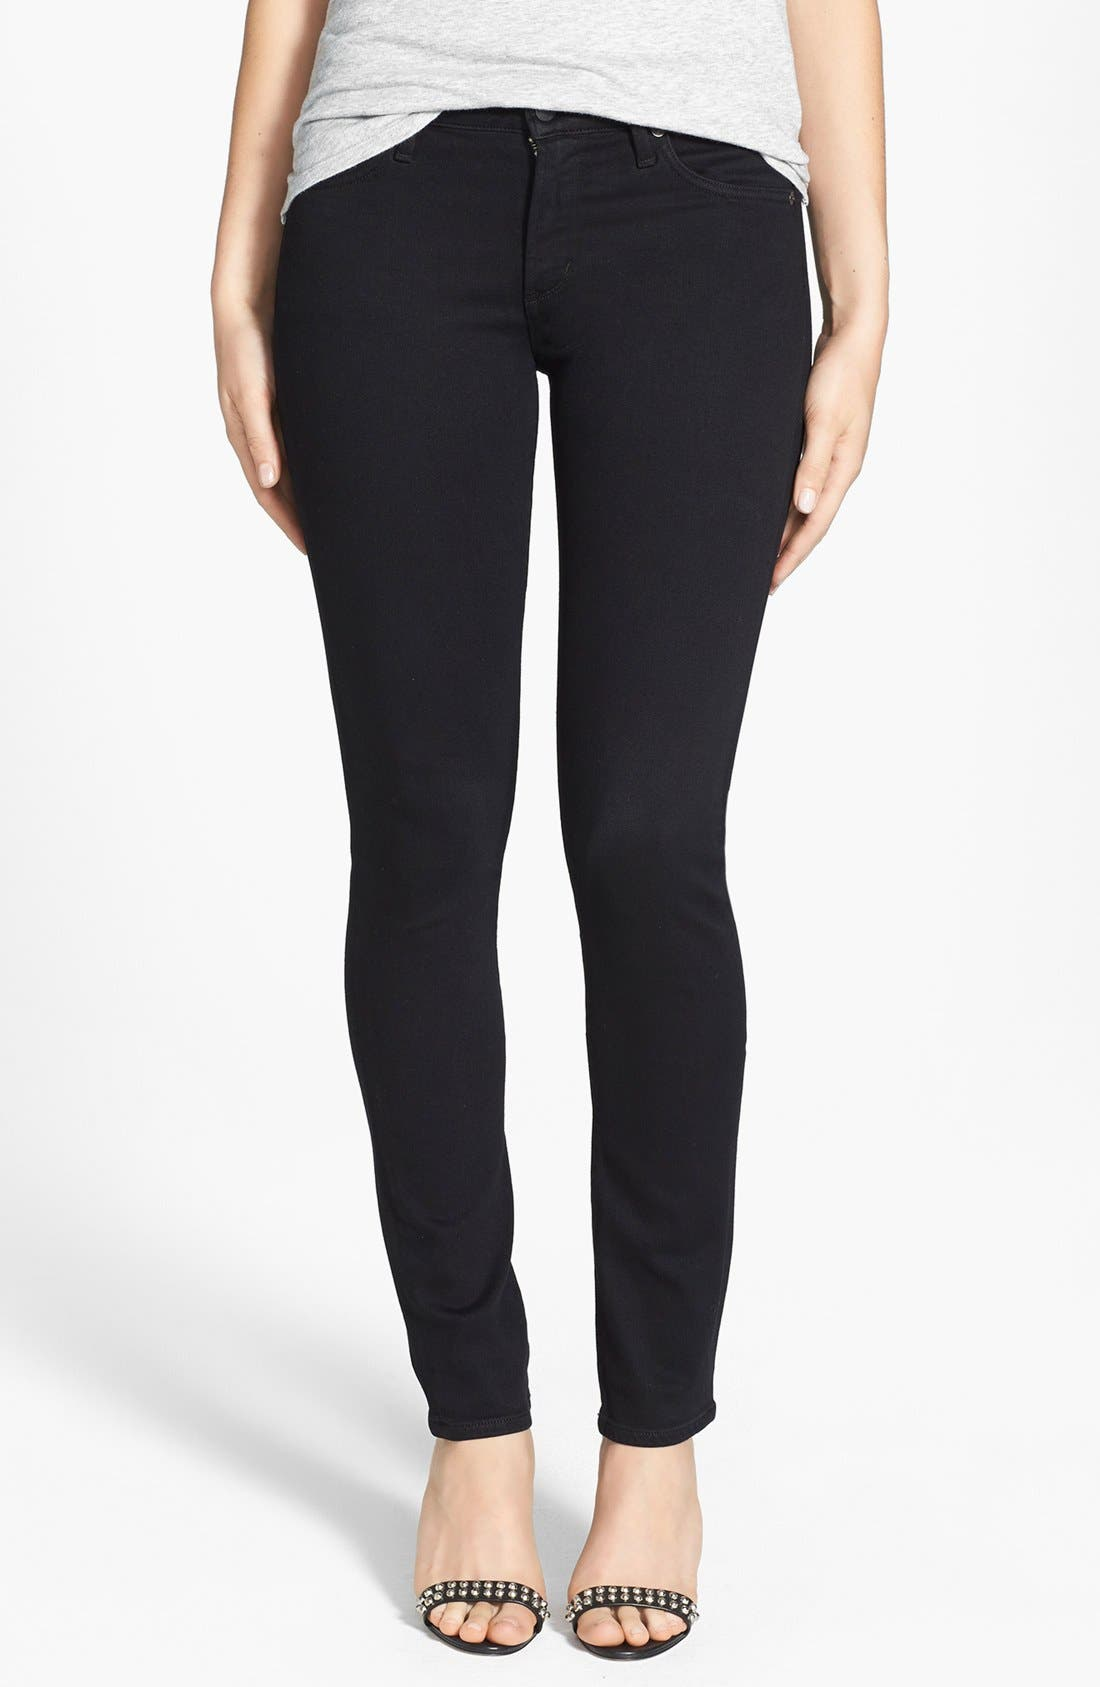 Main Image - Citizens of Humanity 'Arielle' Mid Rise Slim Jeans (Tuxedo)